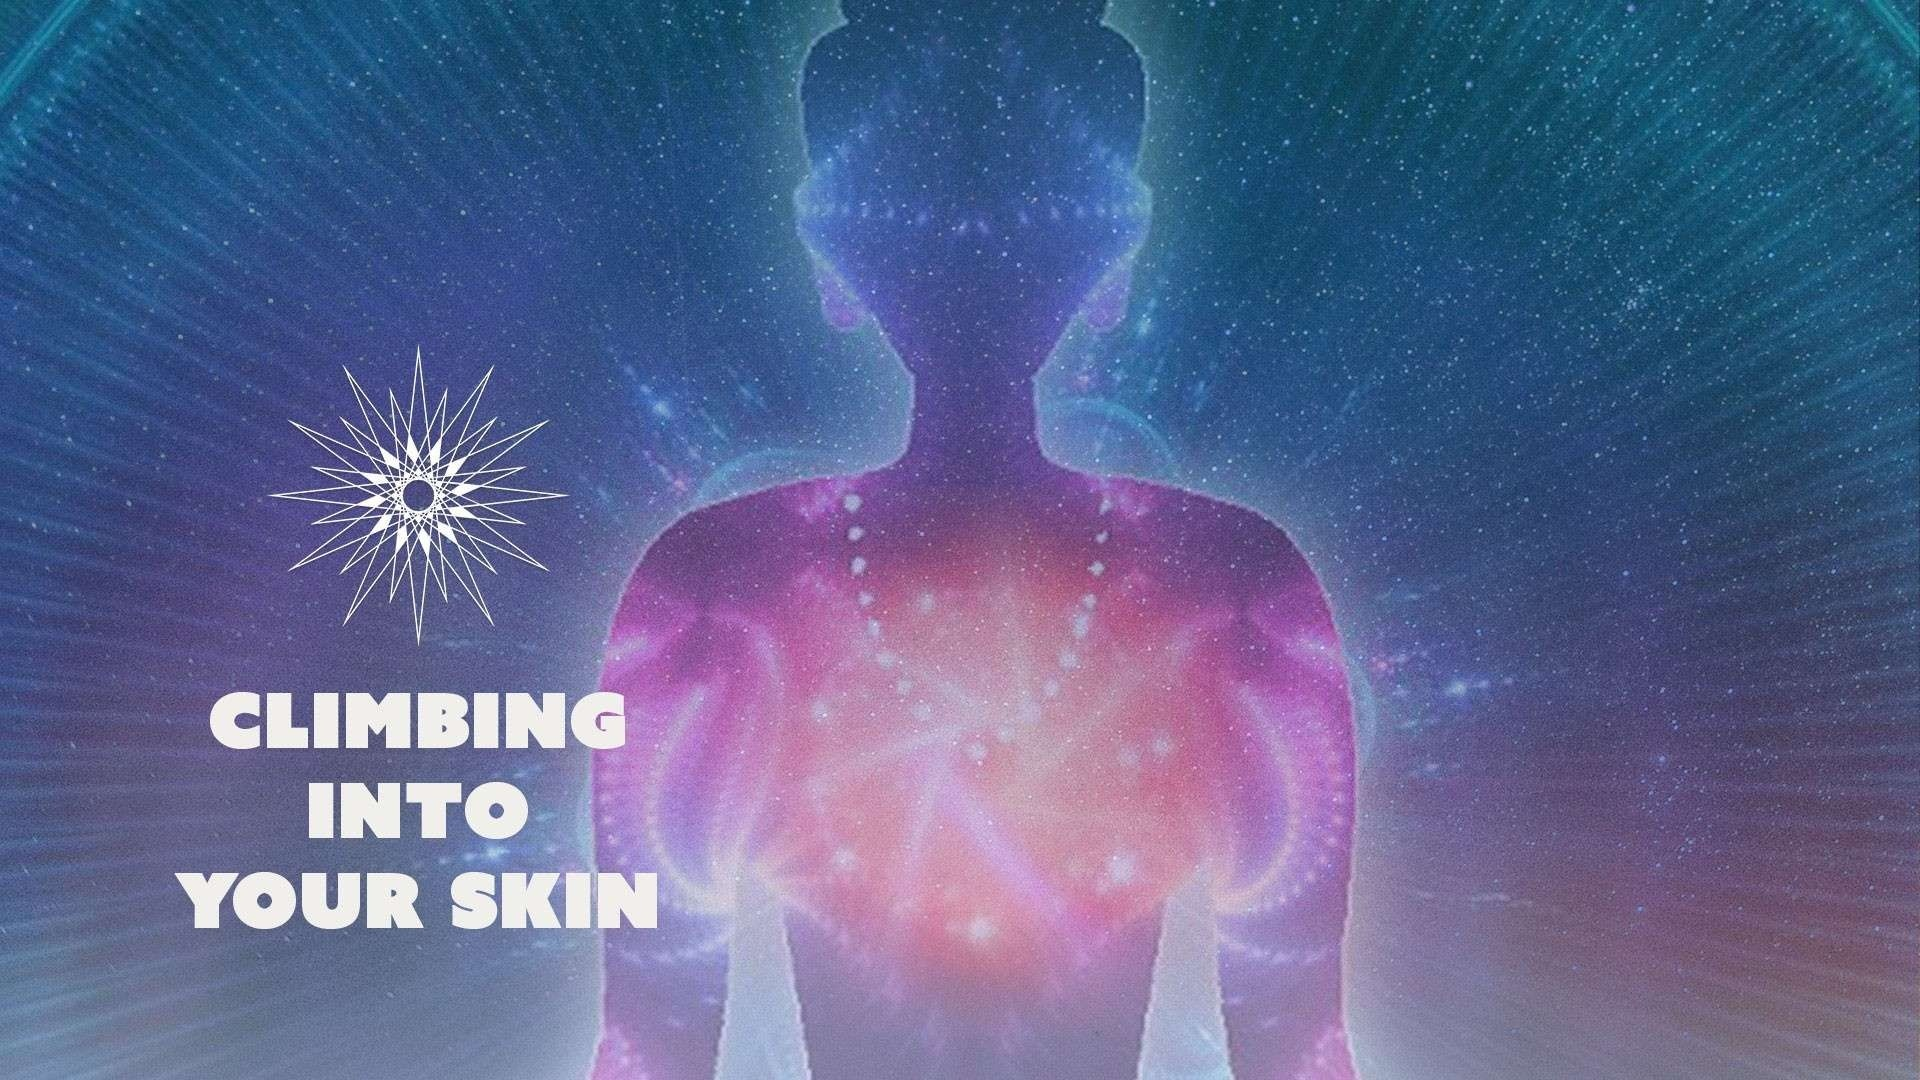 Change Your Stars - Climbing into your Skin Becoming Heart Centric